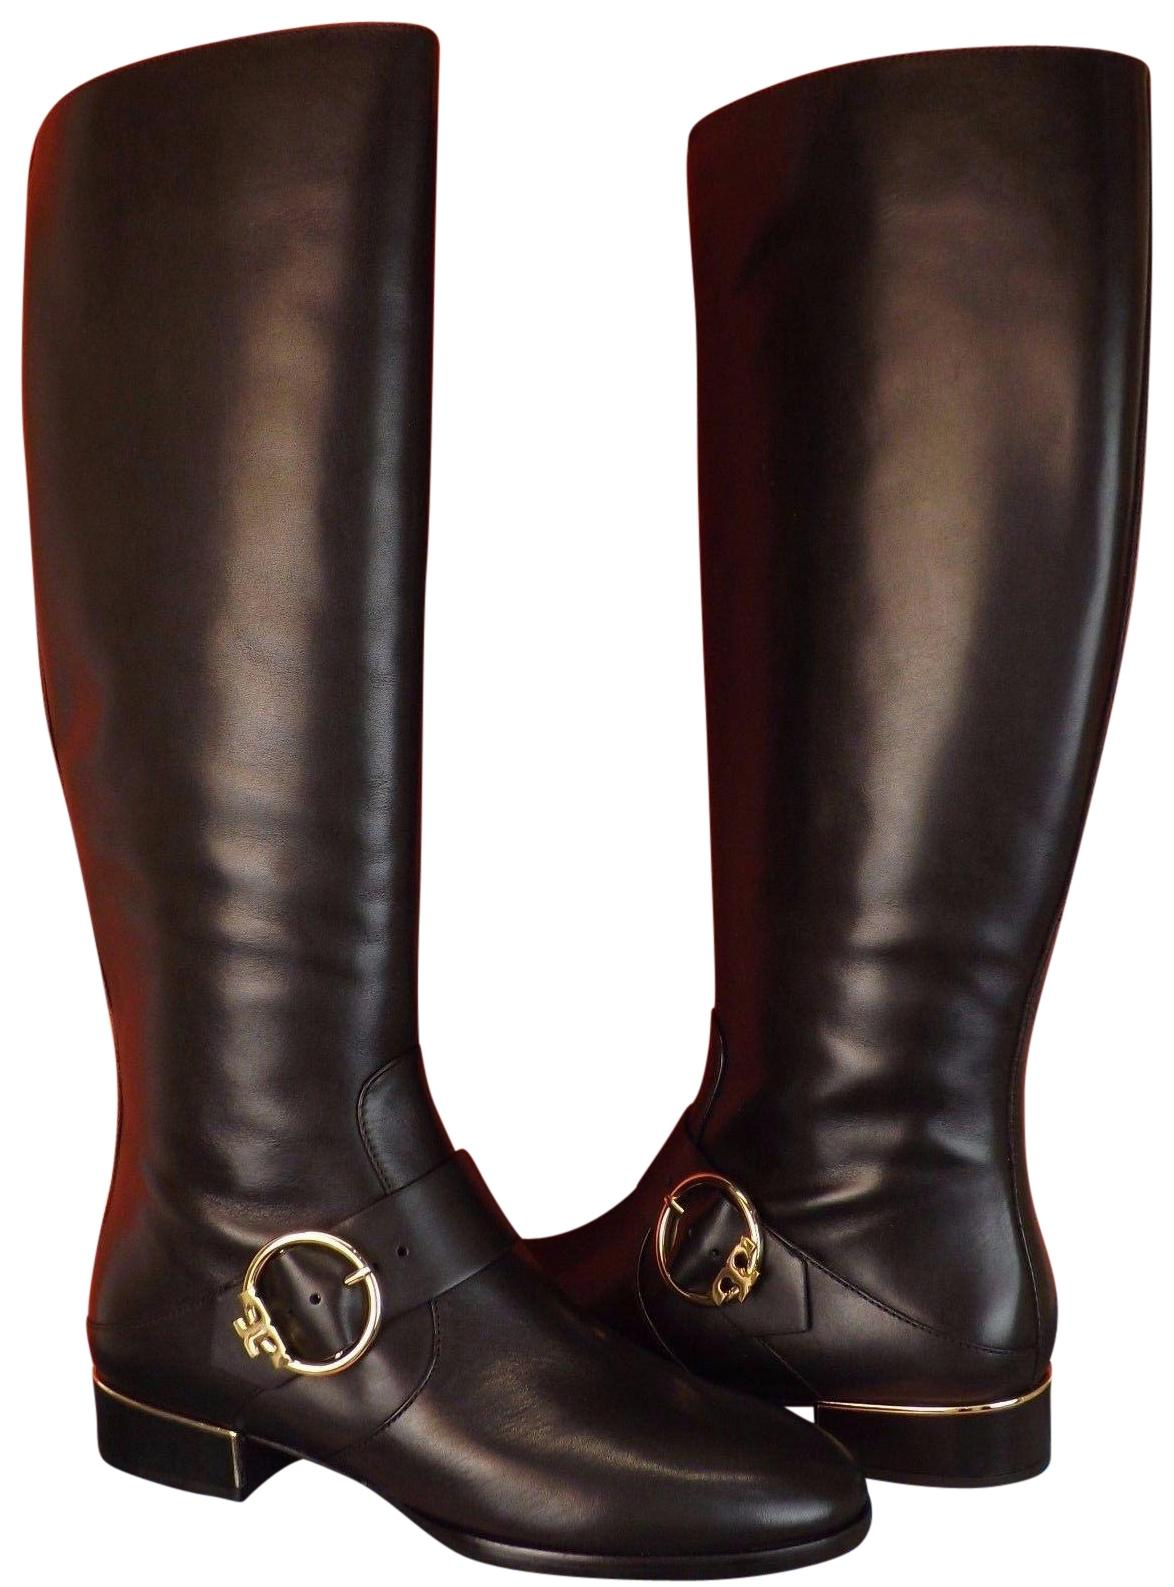 ad3b0c0b978 tory-burch-black-sofia-belted-leather-reva-tall-riding -bootsbooties-size-us-75-regular-m-b-22559864-0-1.jpg